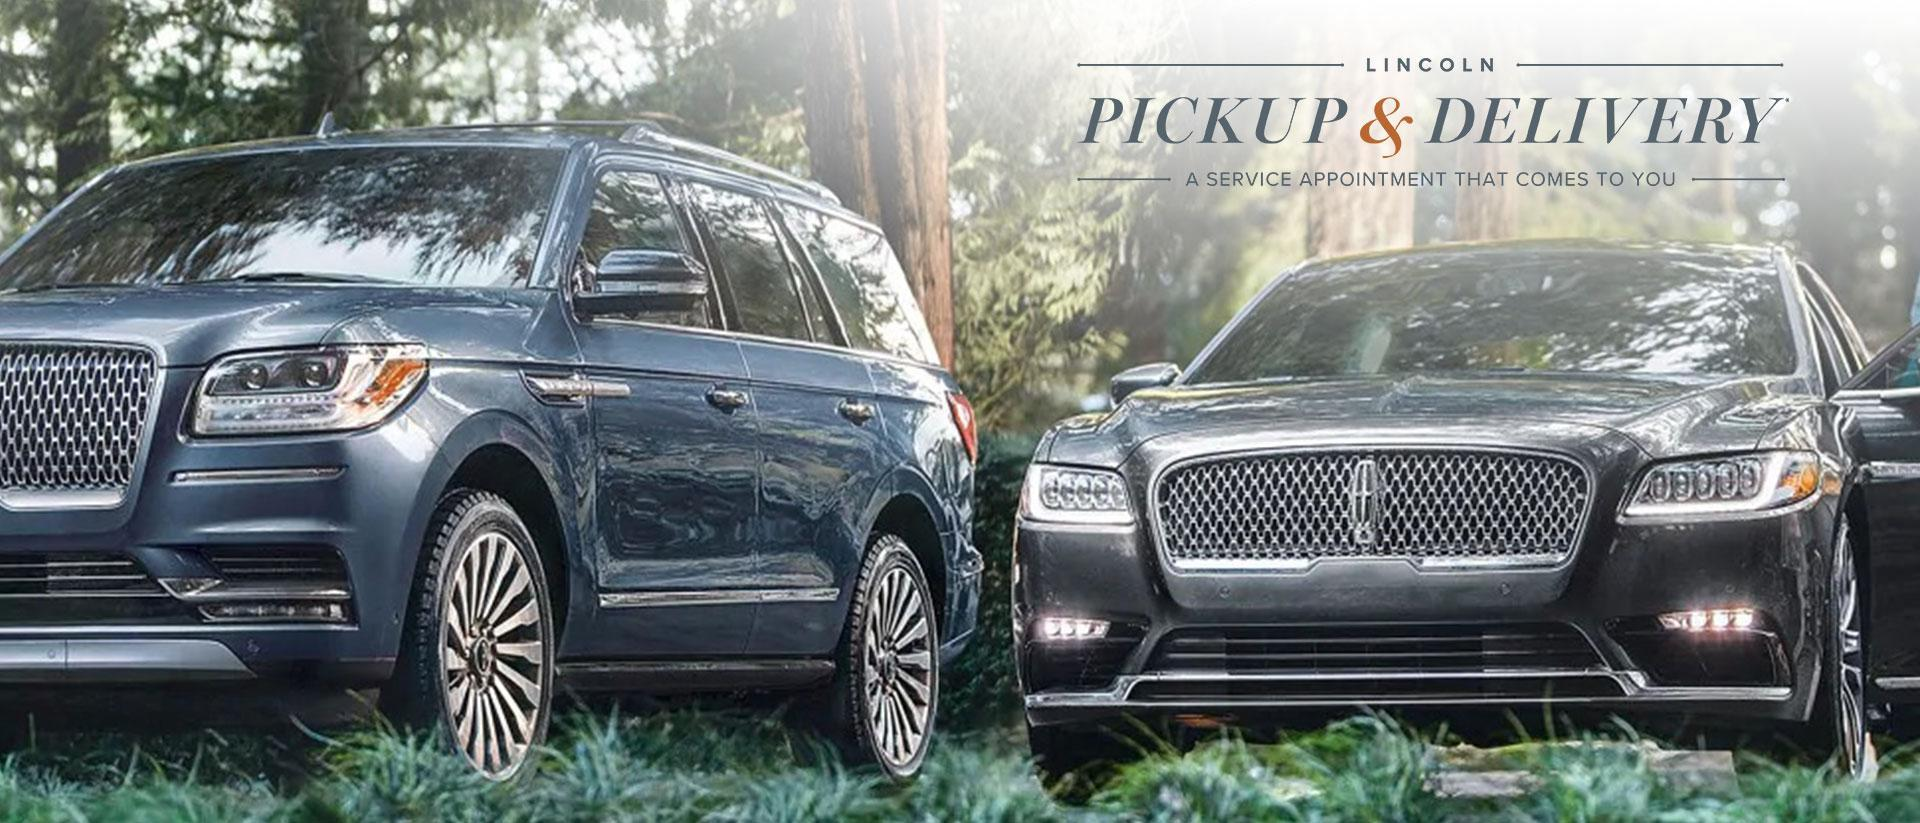 Lincoln Pickup and Delivery | Wayne Pitman Lincoln